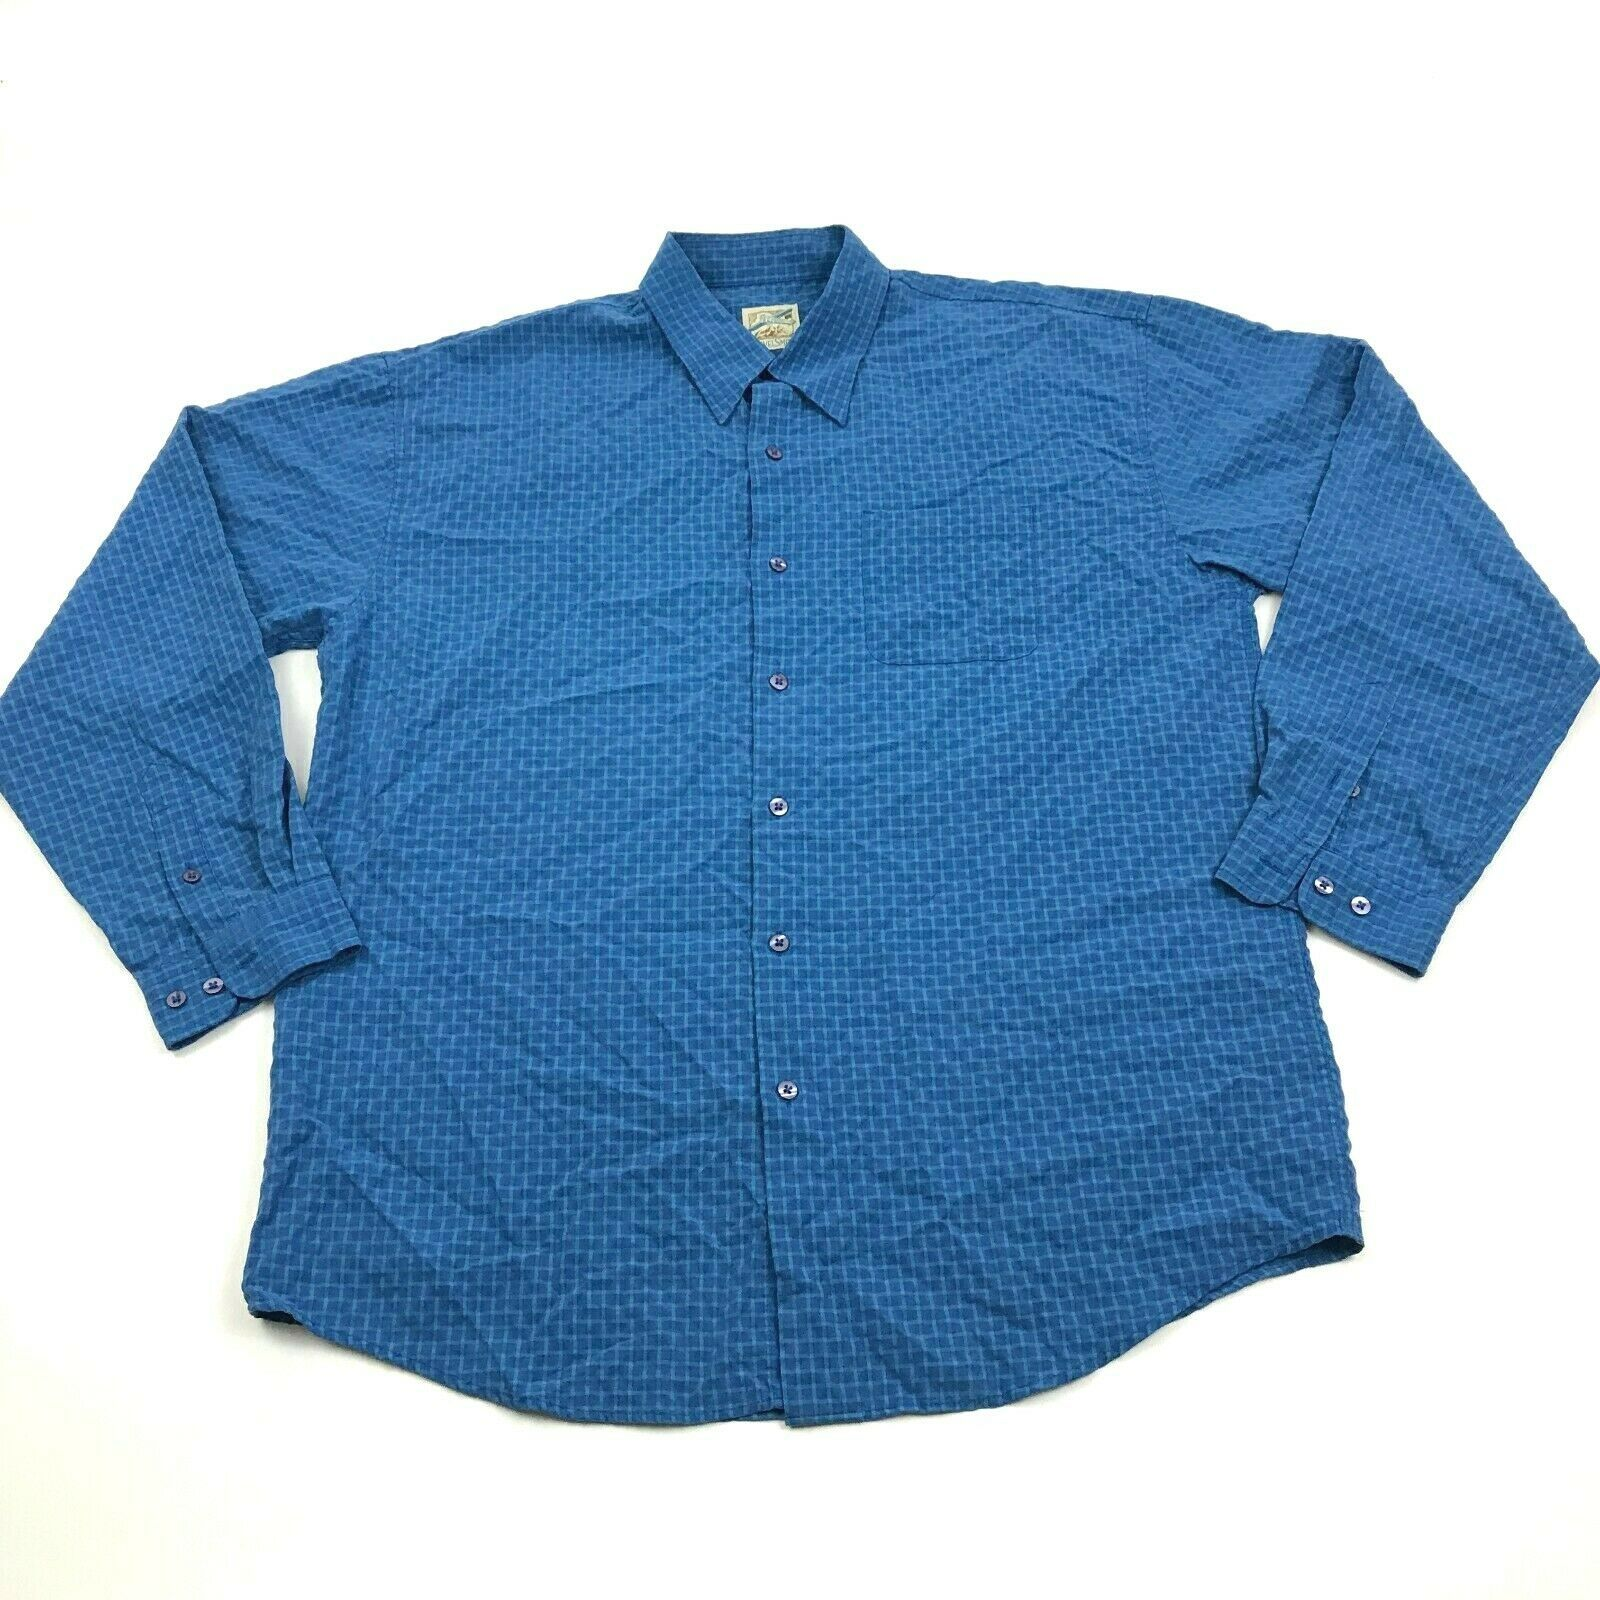 Primary image for Vintage TravelSmith Button Up Shirt Size L Large Men's Blue Check Long Sleeve